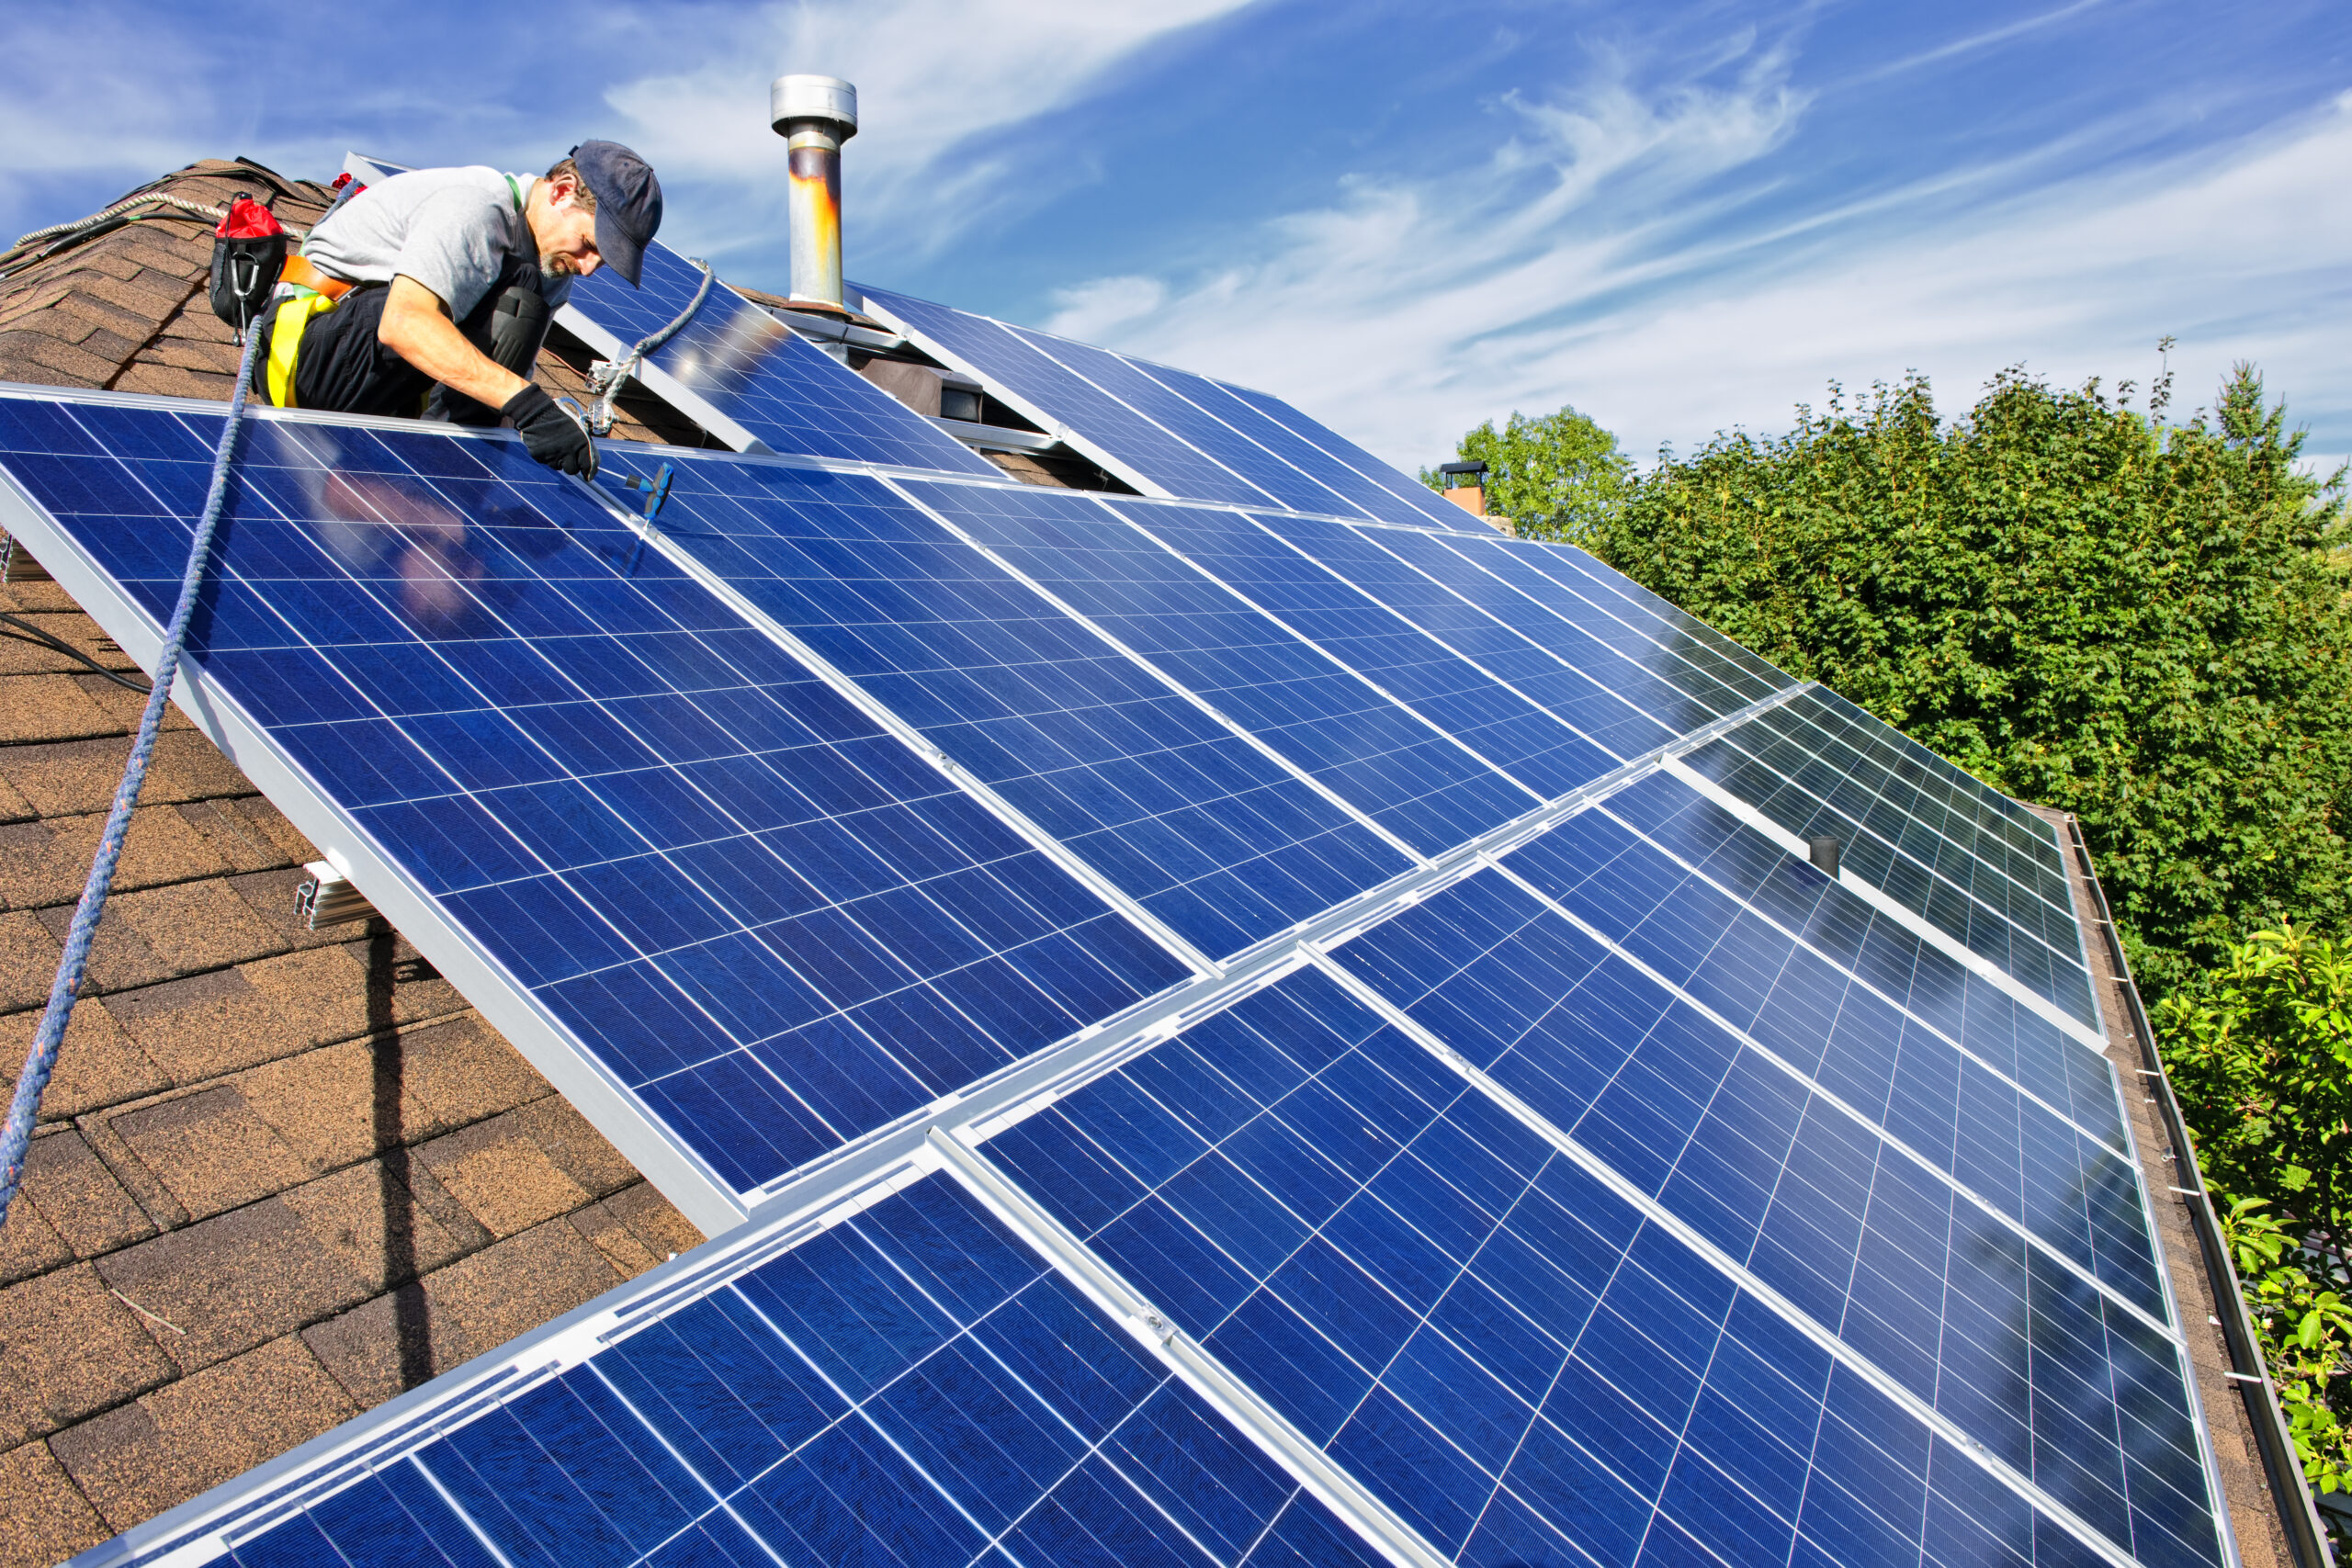 WHAT ARE THE BENEFITS OF HAVING SOLAR PANELS?